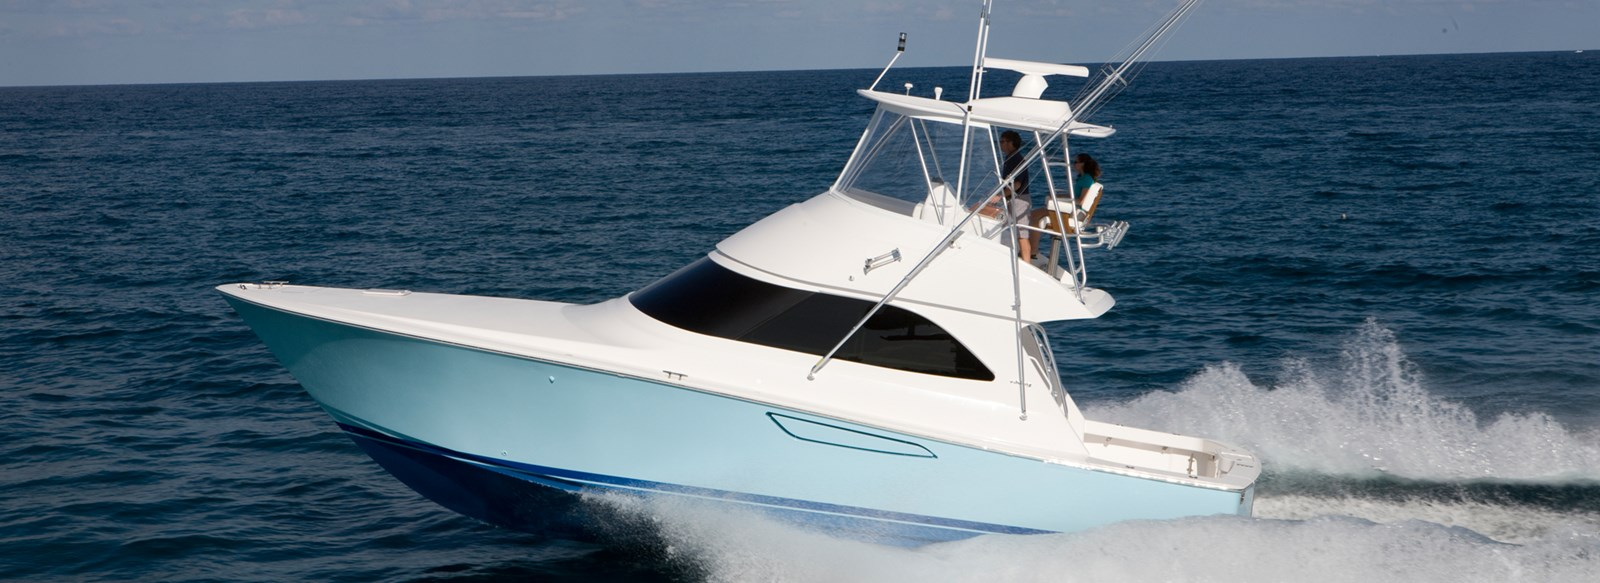 New Viking 42 Convertible Yachts For Sale